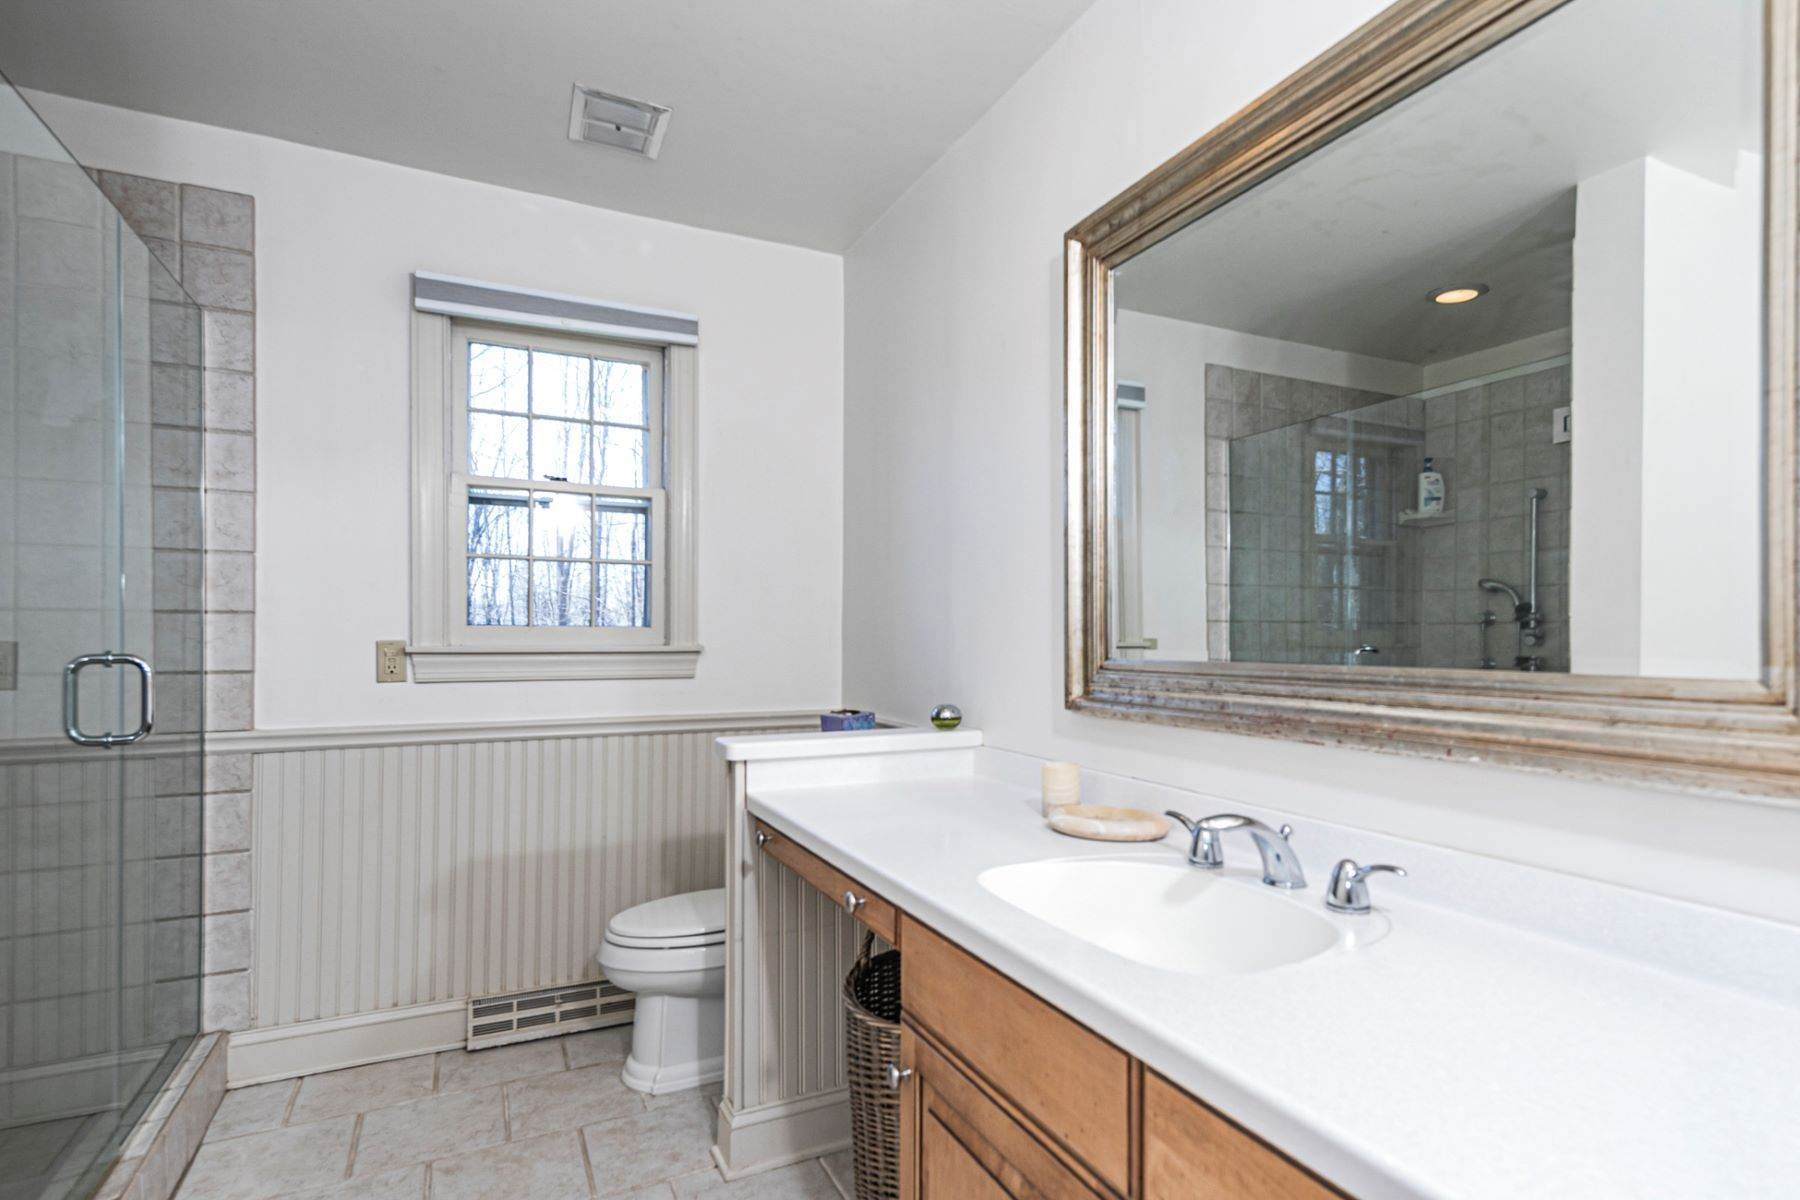 32. Single Family Homes for Sale at A New Kitchen And Updated Baths Make This Home Sparkle 91 West Shore Drive, Pennington, New Jersey 08534 United States